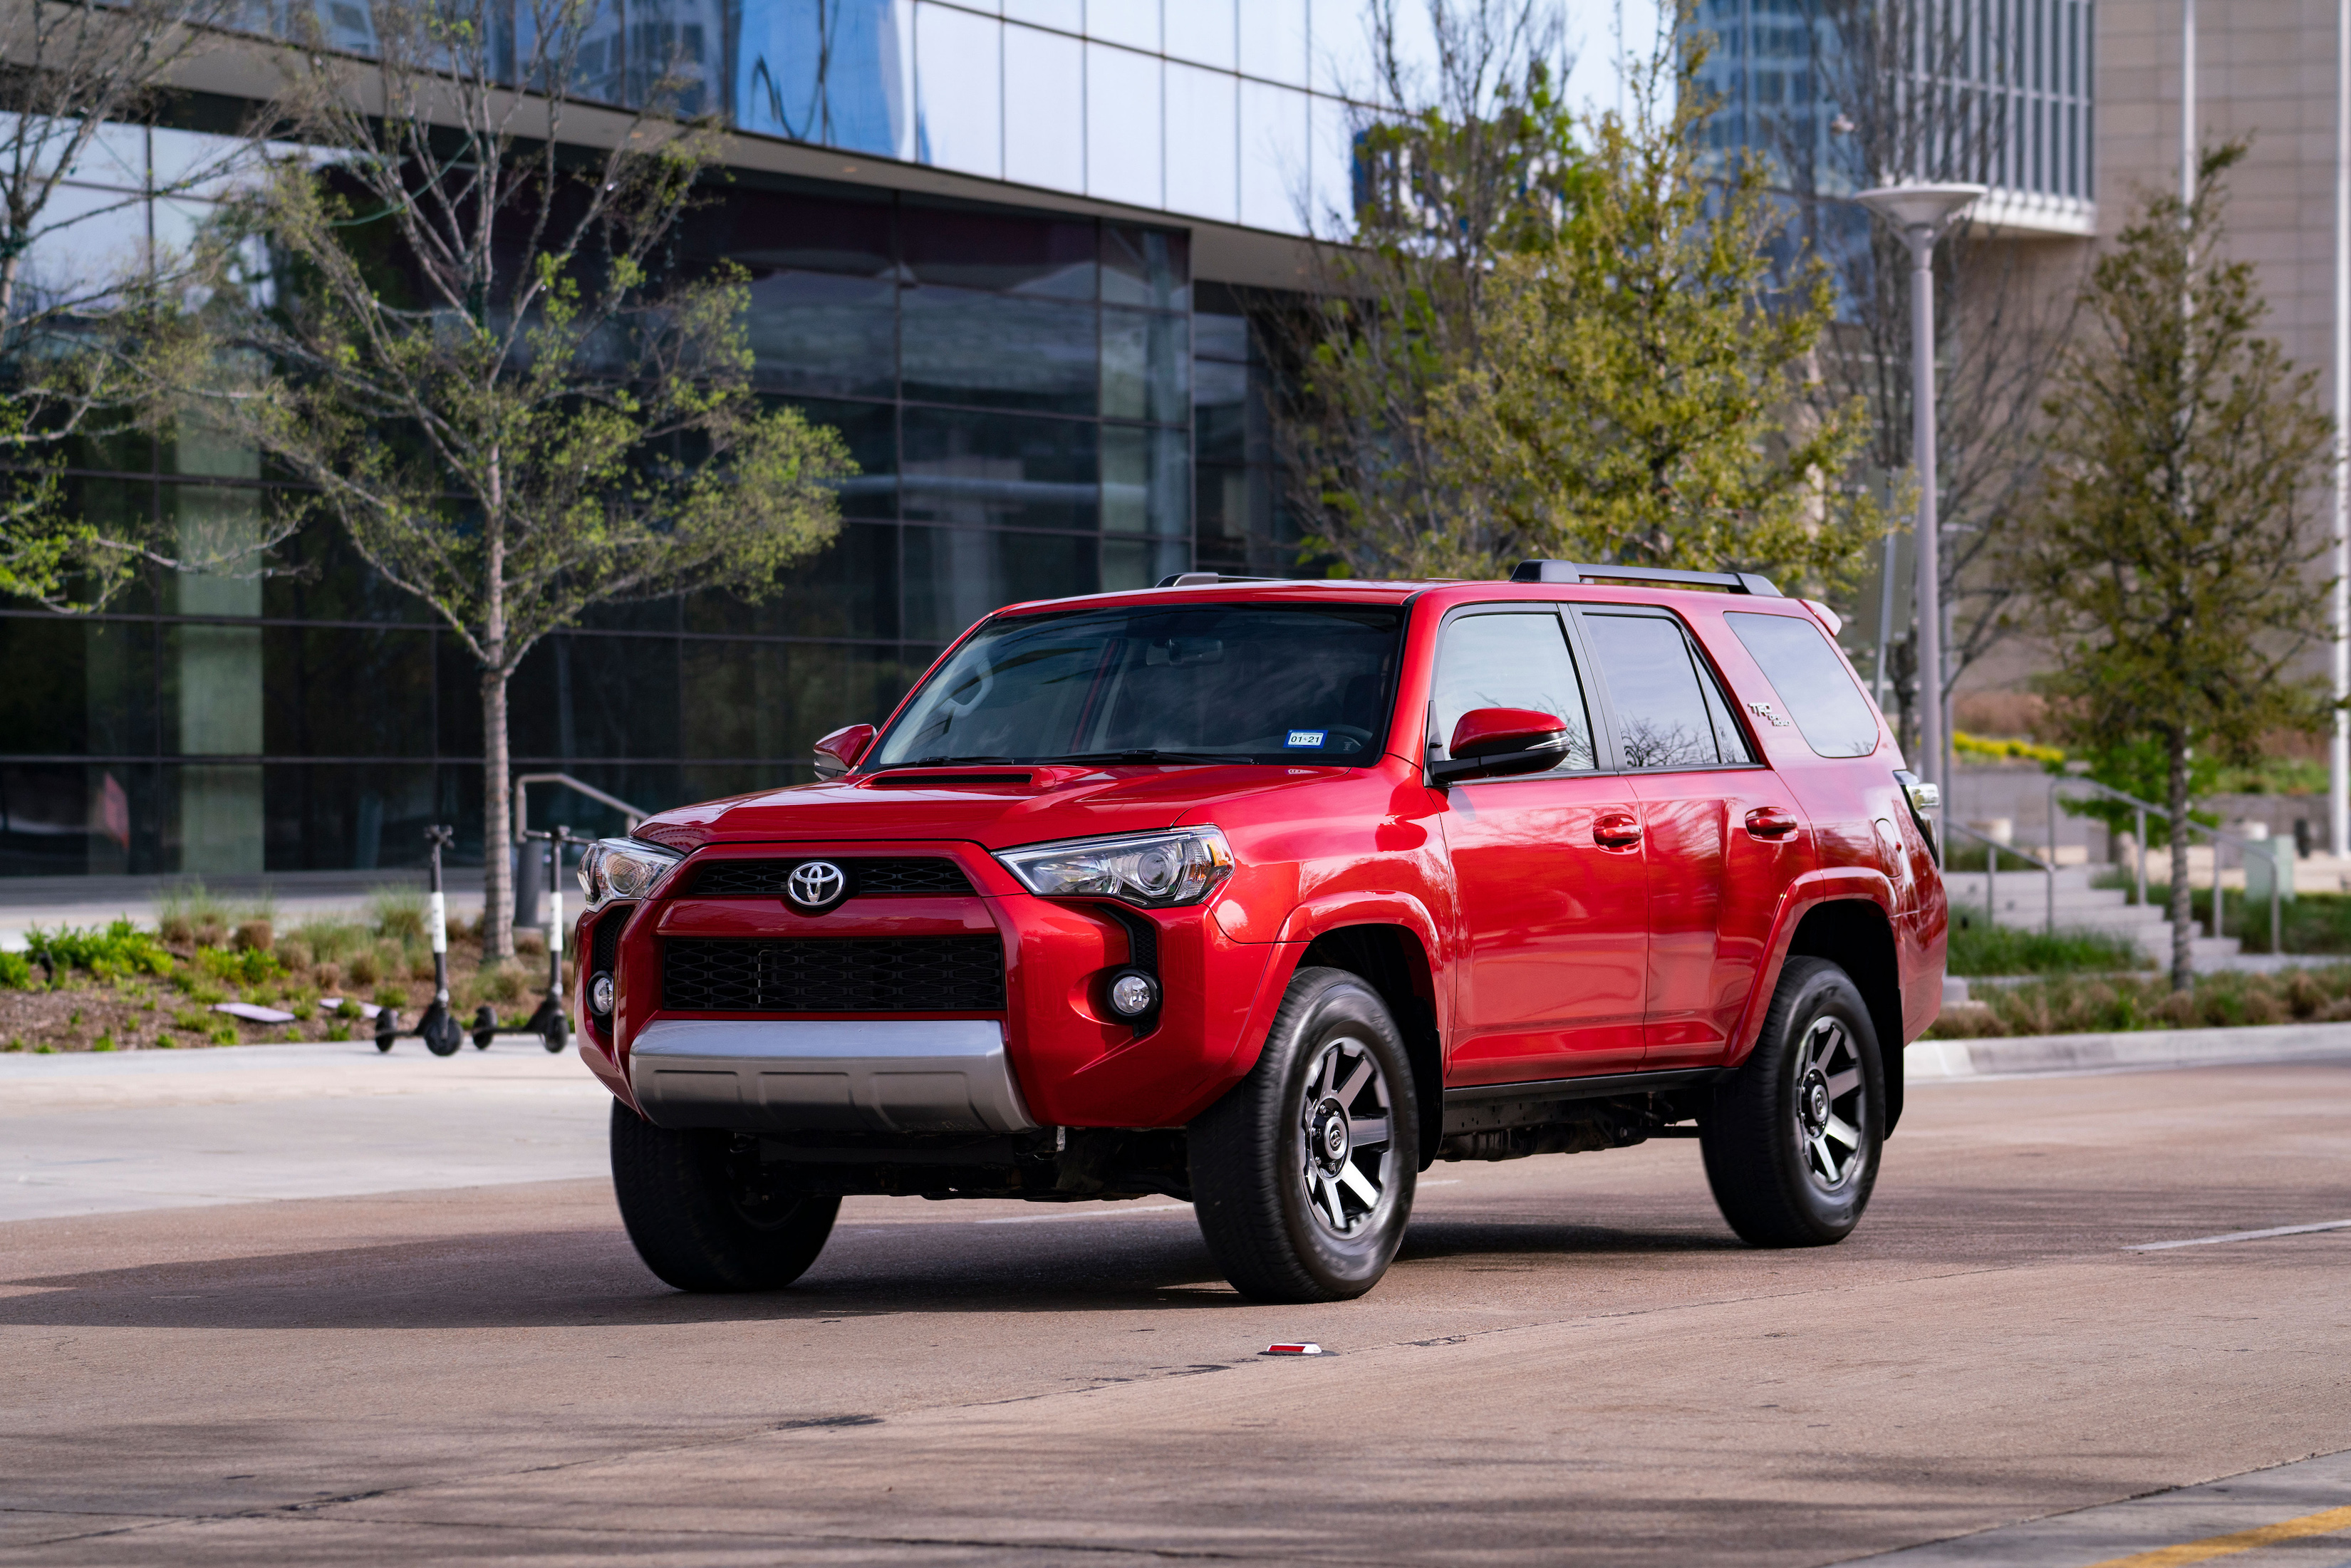 the best toyota 4runner years for a used model the best toyota 4runner years for a used model